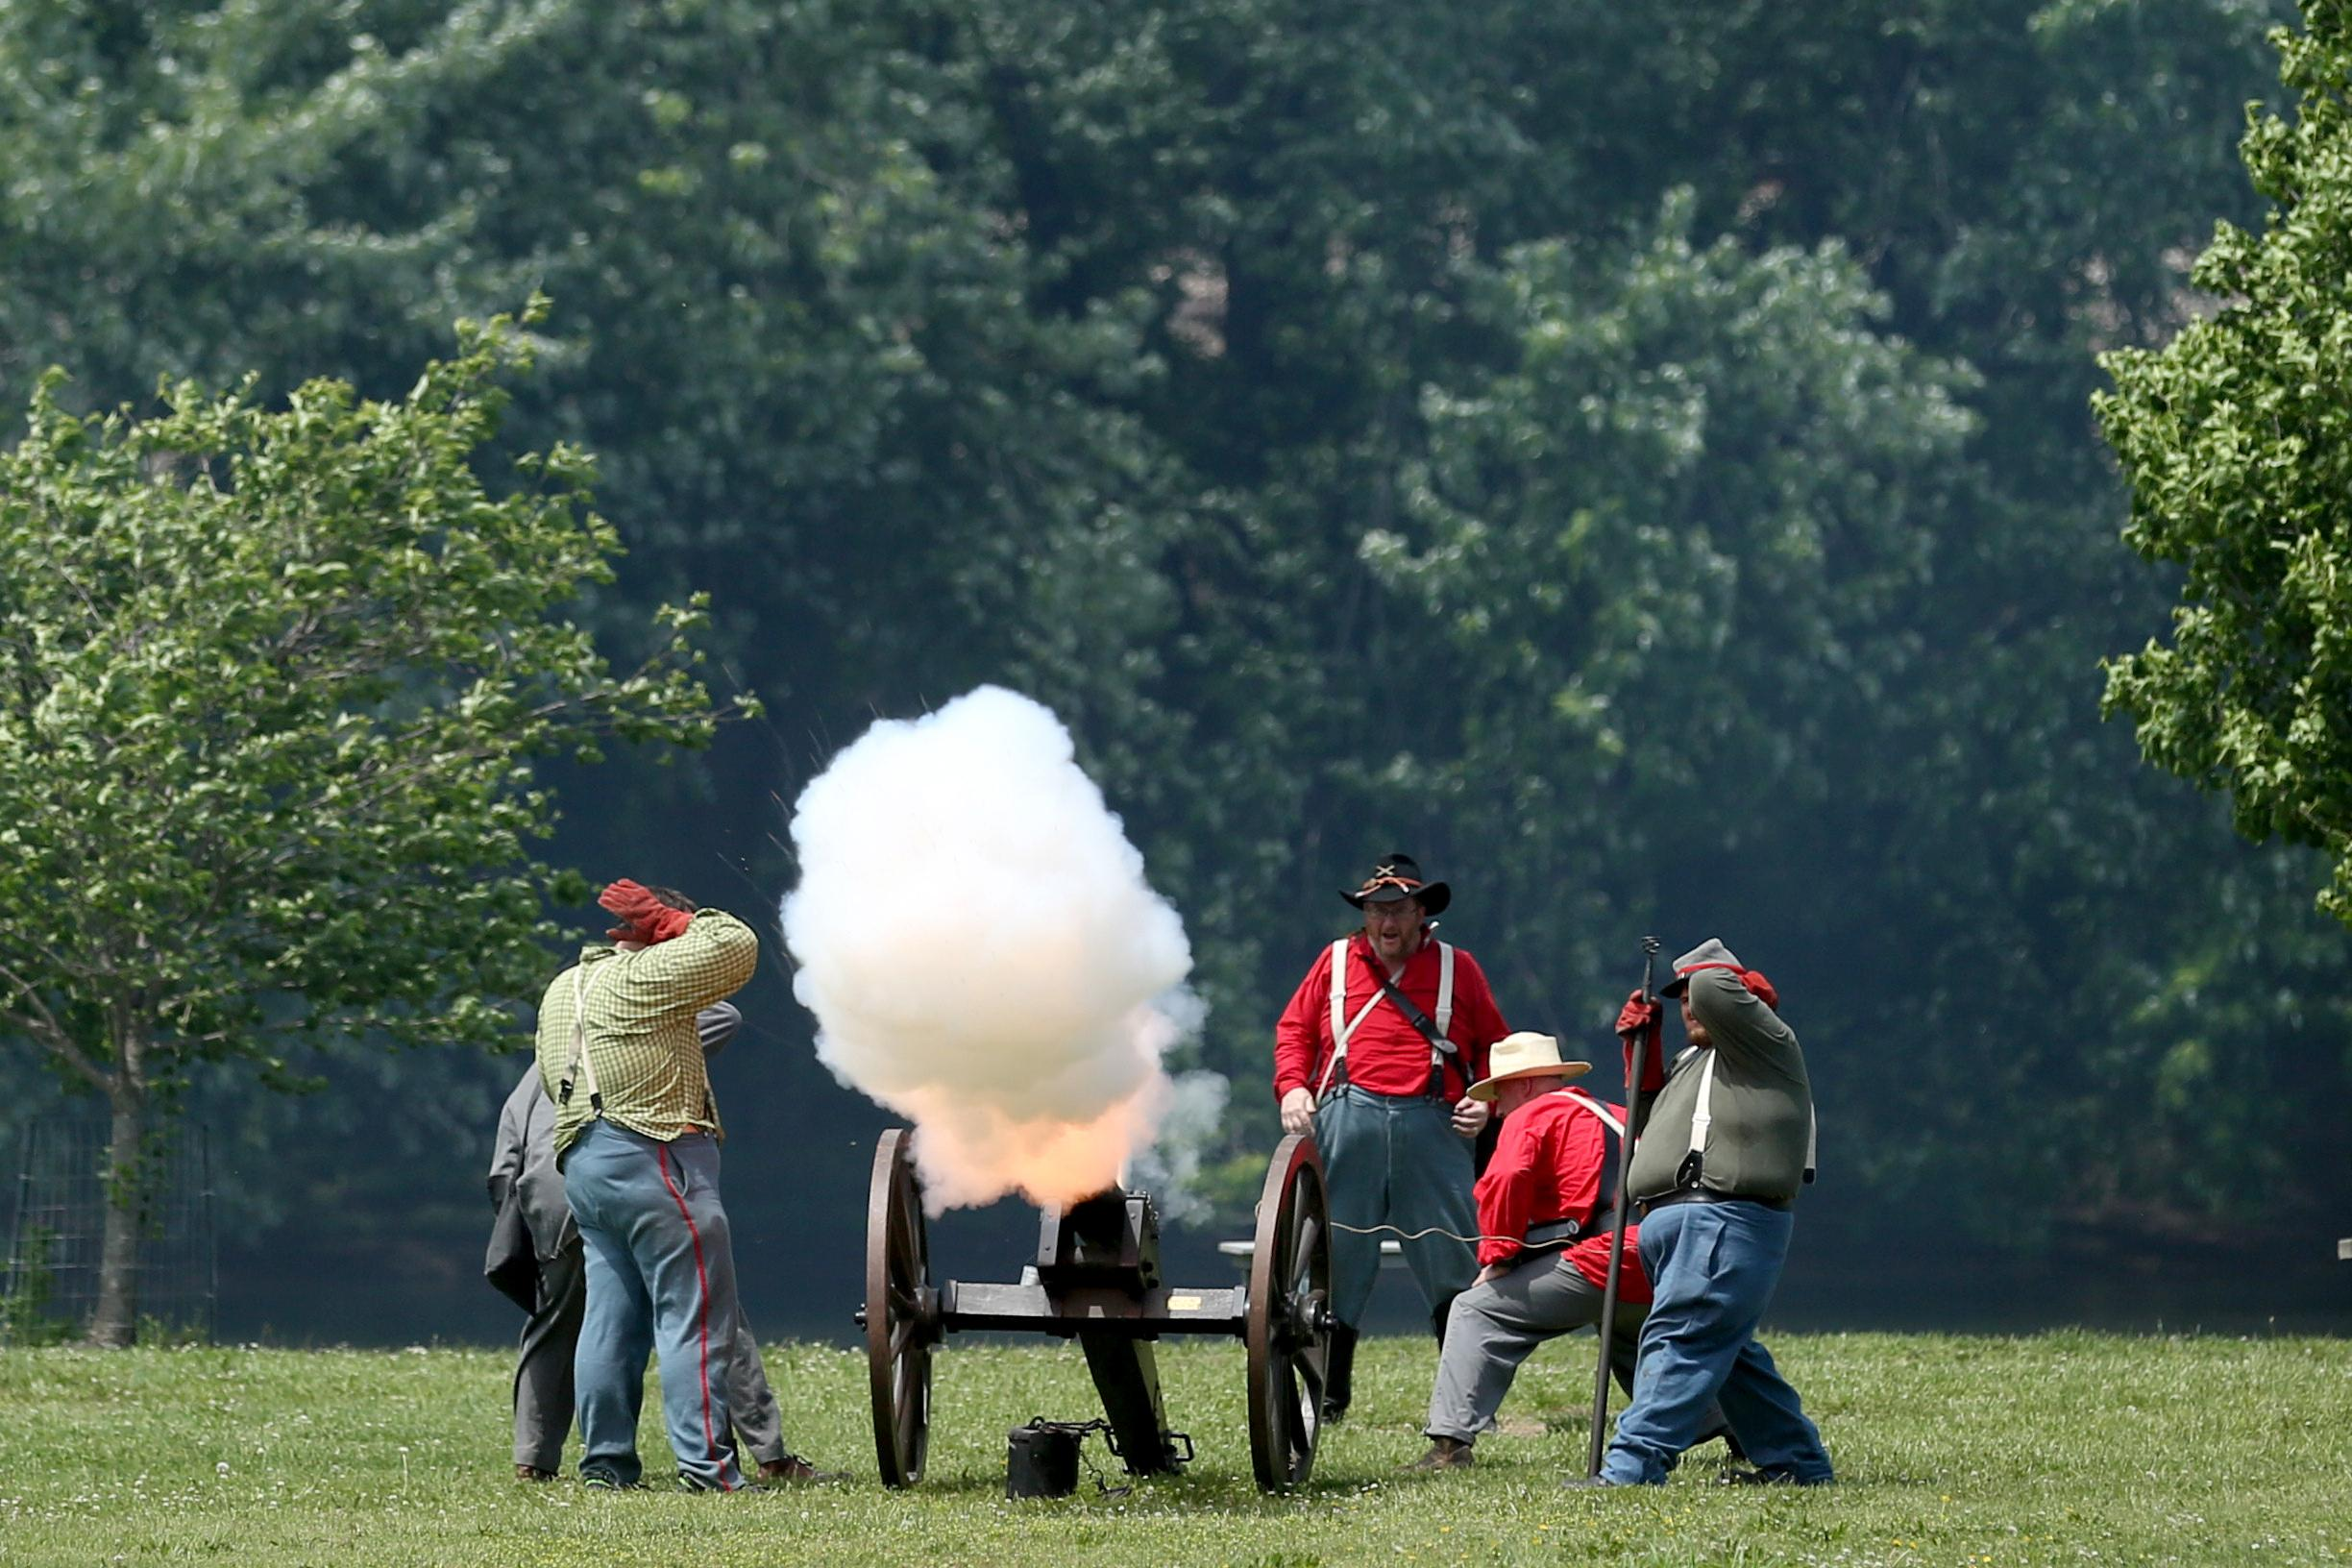 History enthusiasts flocked to Buchanan, Virginia, last weekend for their annual Civil War reenactment. The festivities spanned over three days, but Sunday, April 29 culminated in a battle at the town's park. Events like this will be happening around the region in the coming months - so keep your eyes peeled! (Amanda Andrade-Rhoades/DC Refined)